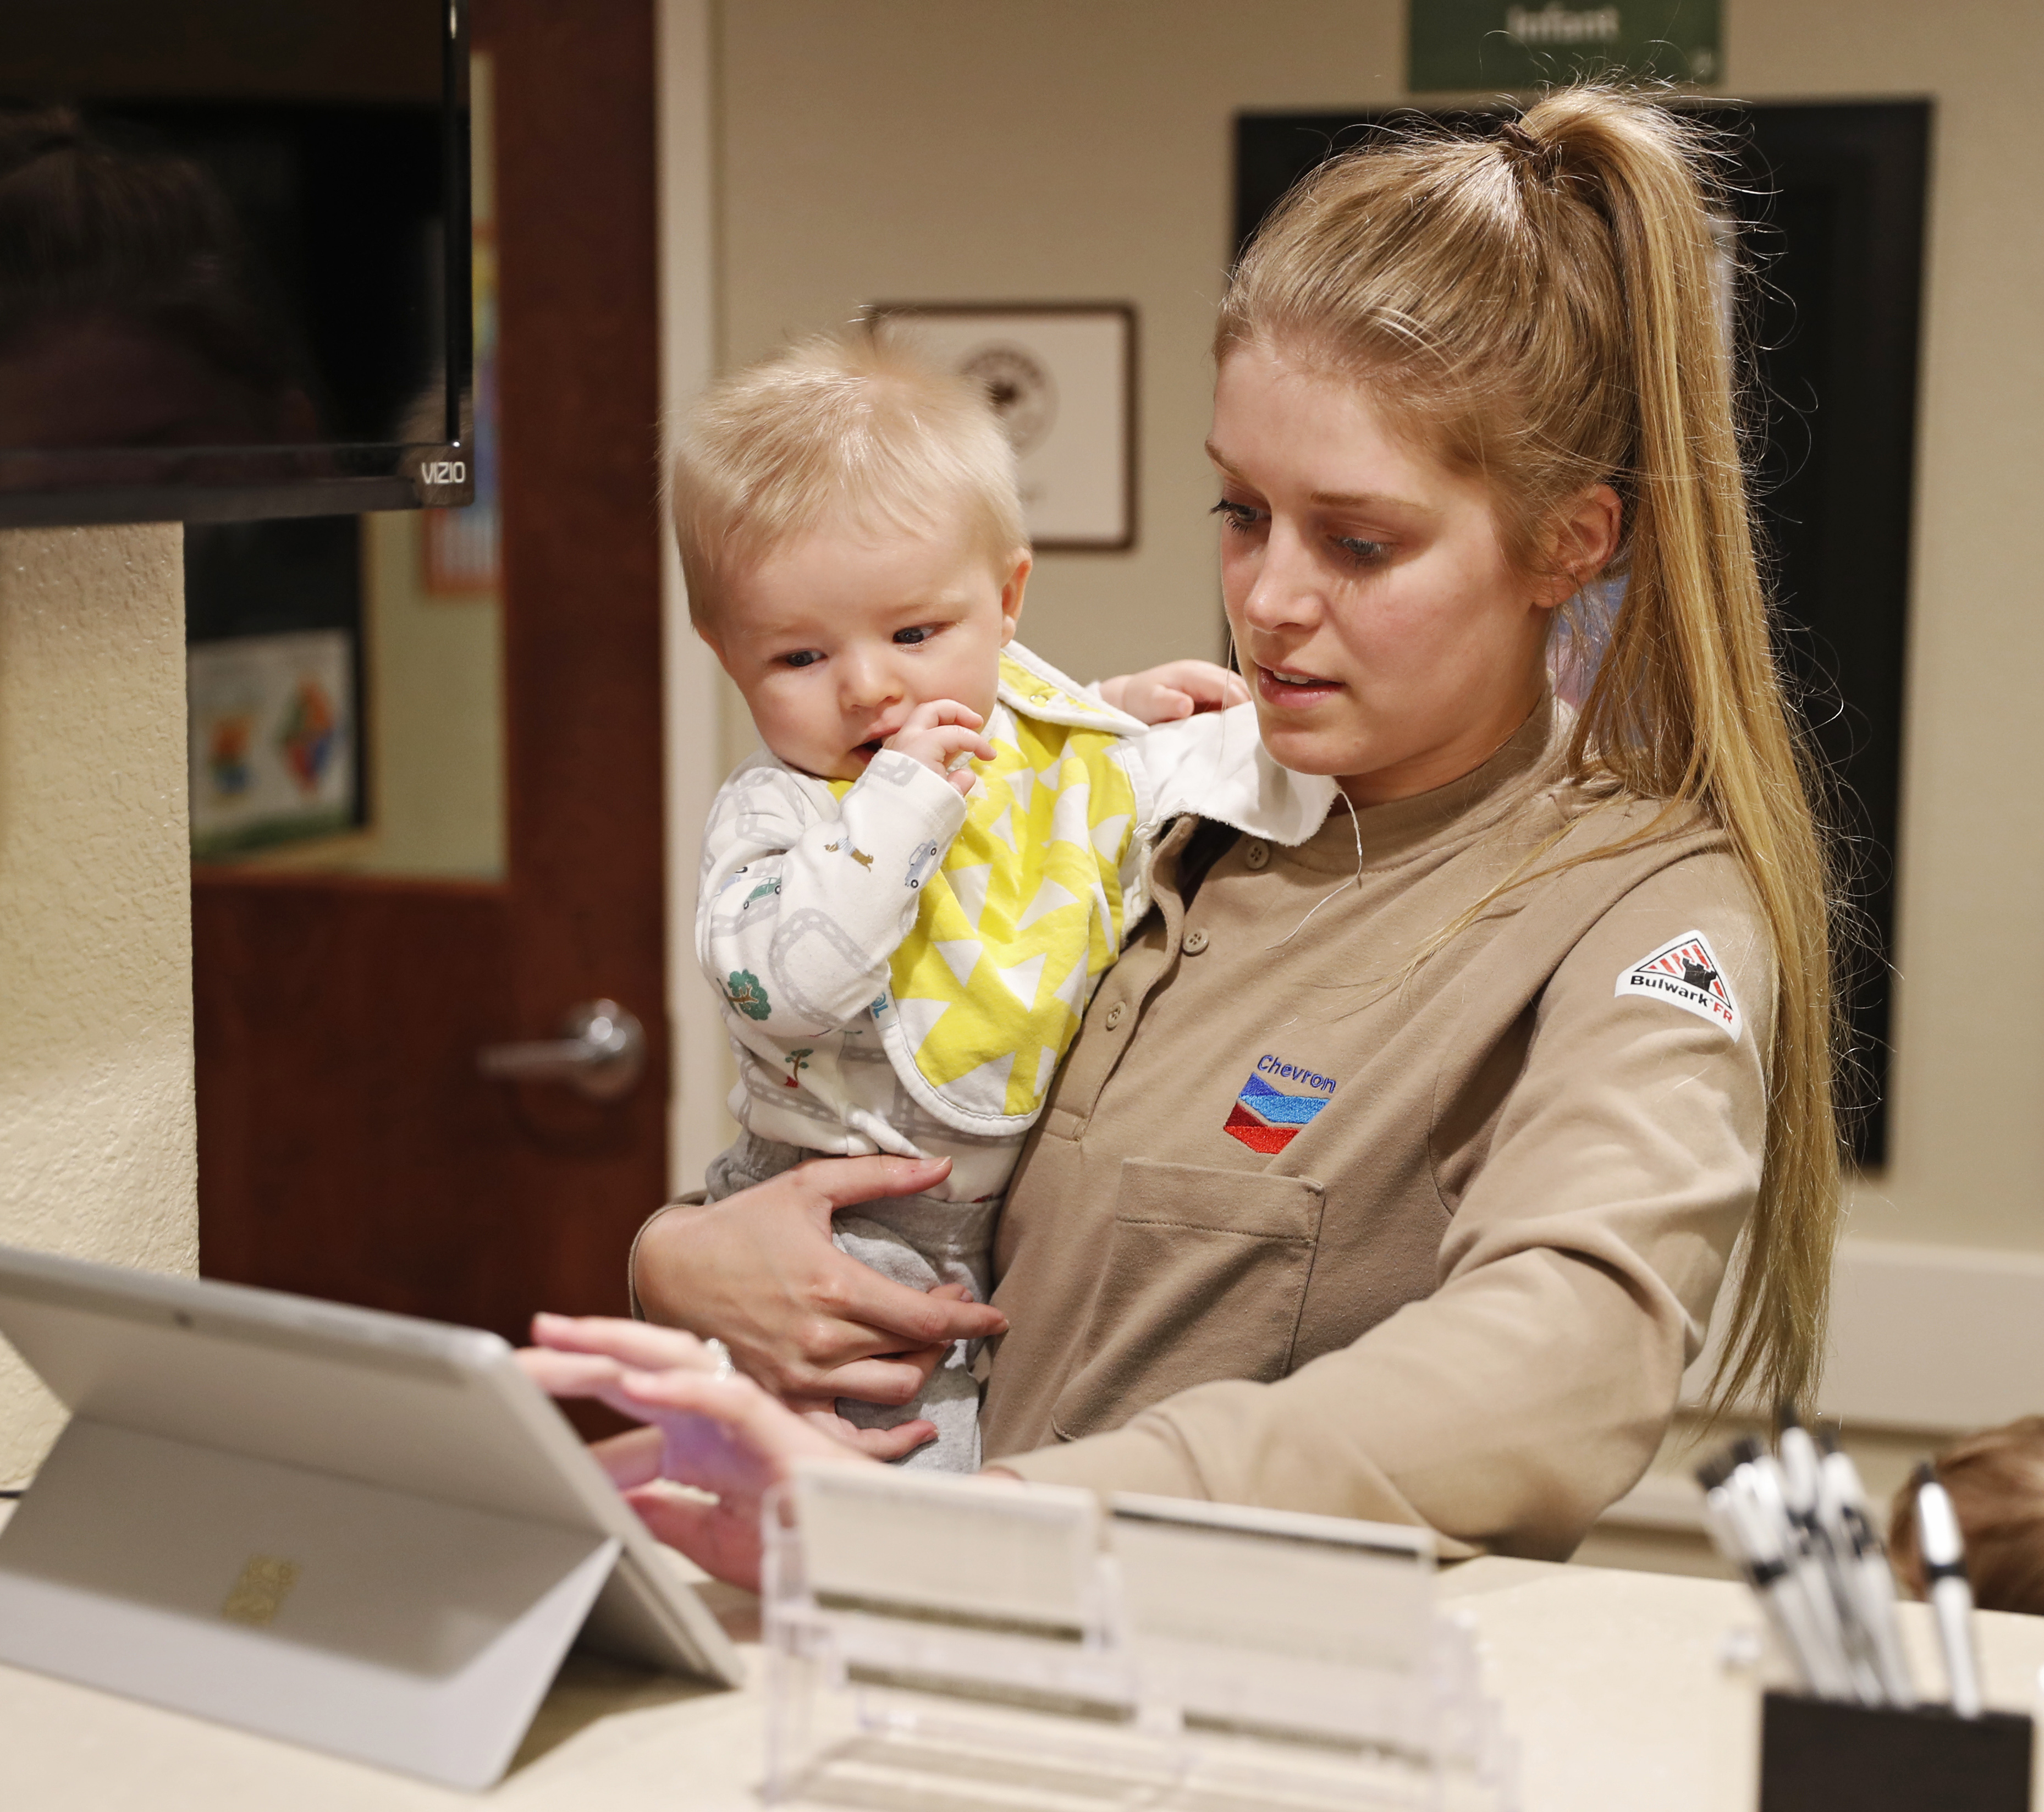 Image of women holding a child and looking at an ipad